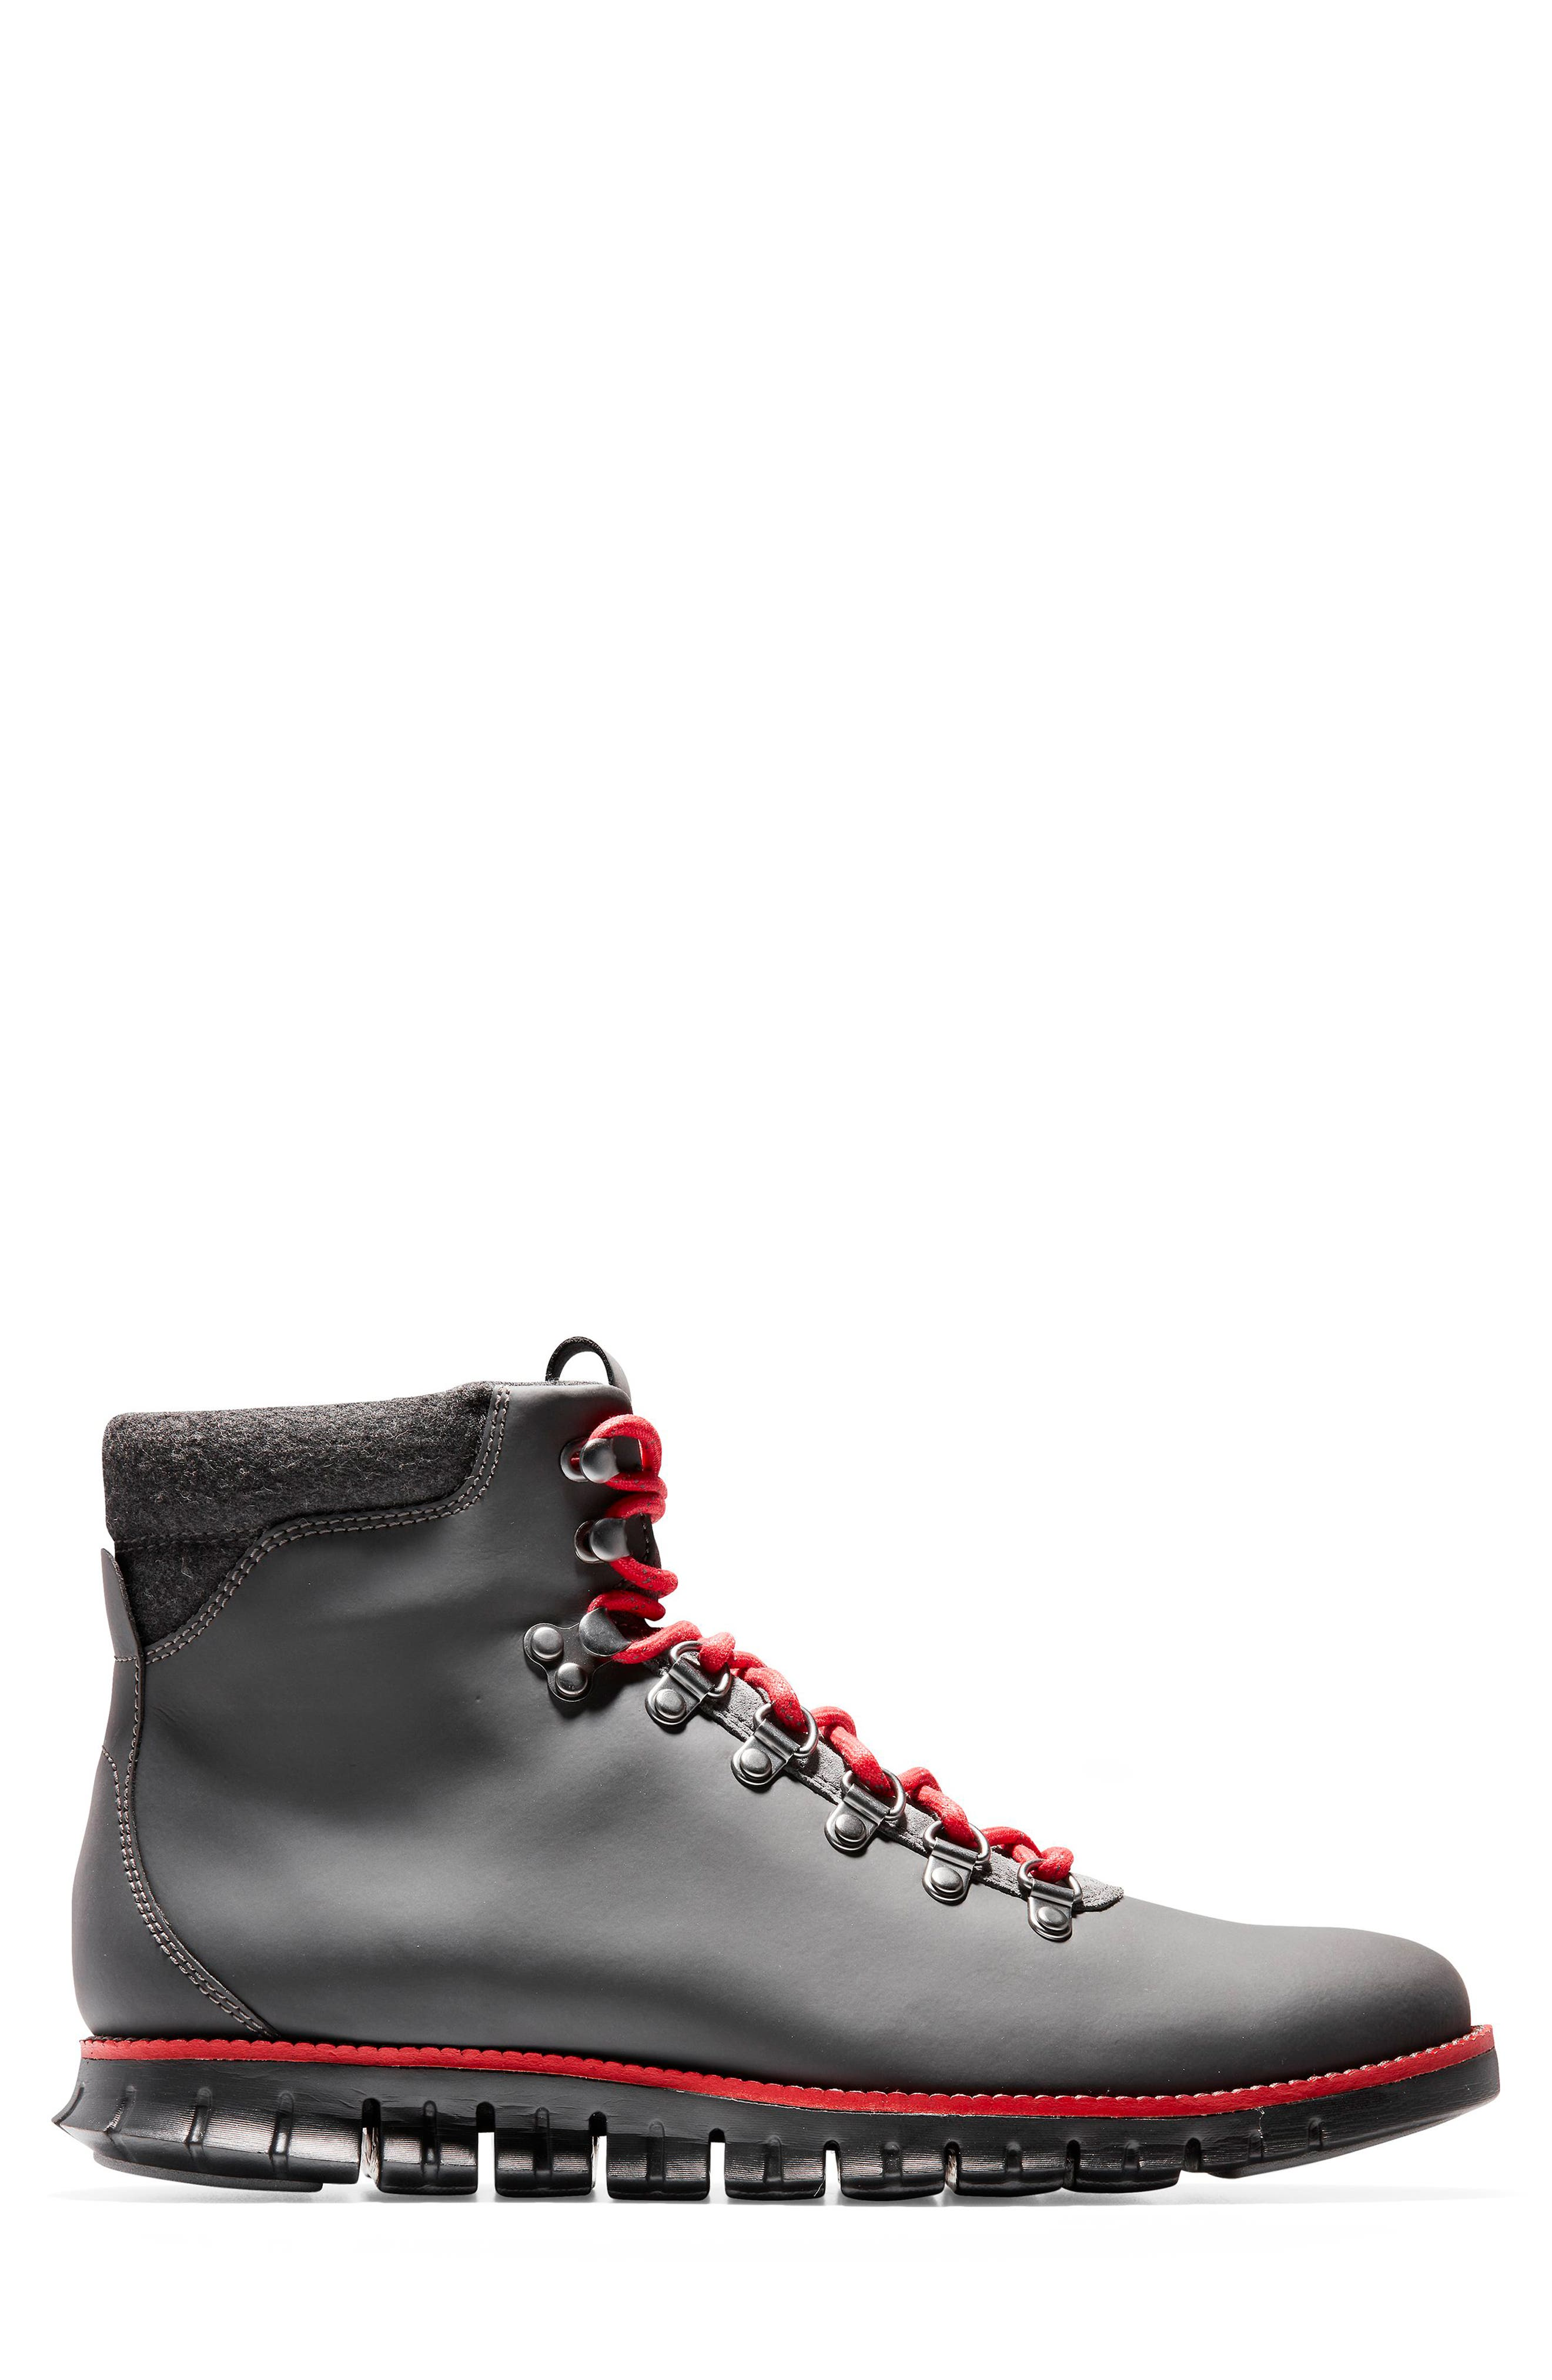 ZeroGrand Water Resistant Hiker Boot,                             Alternate thumbnail 3, color,                             MAGNET LEATHER